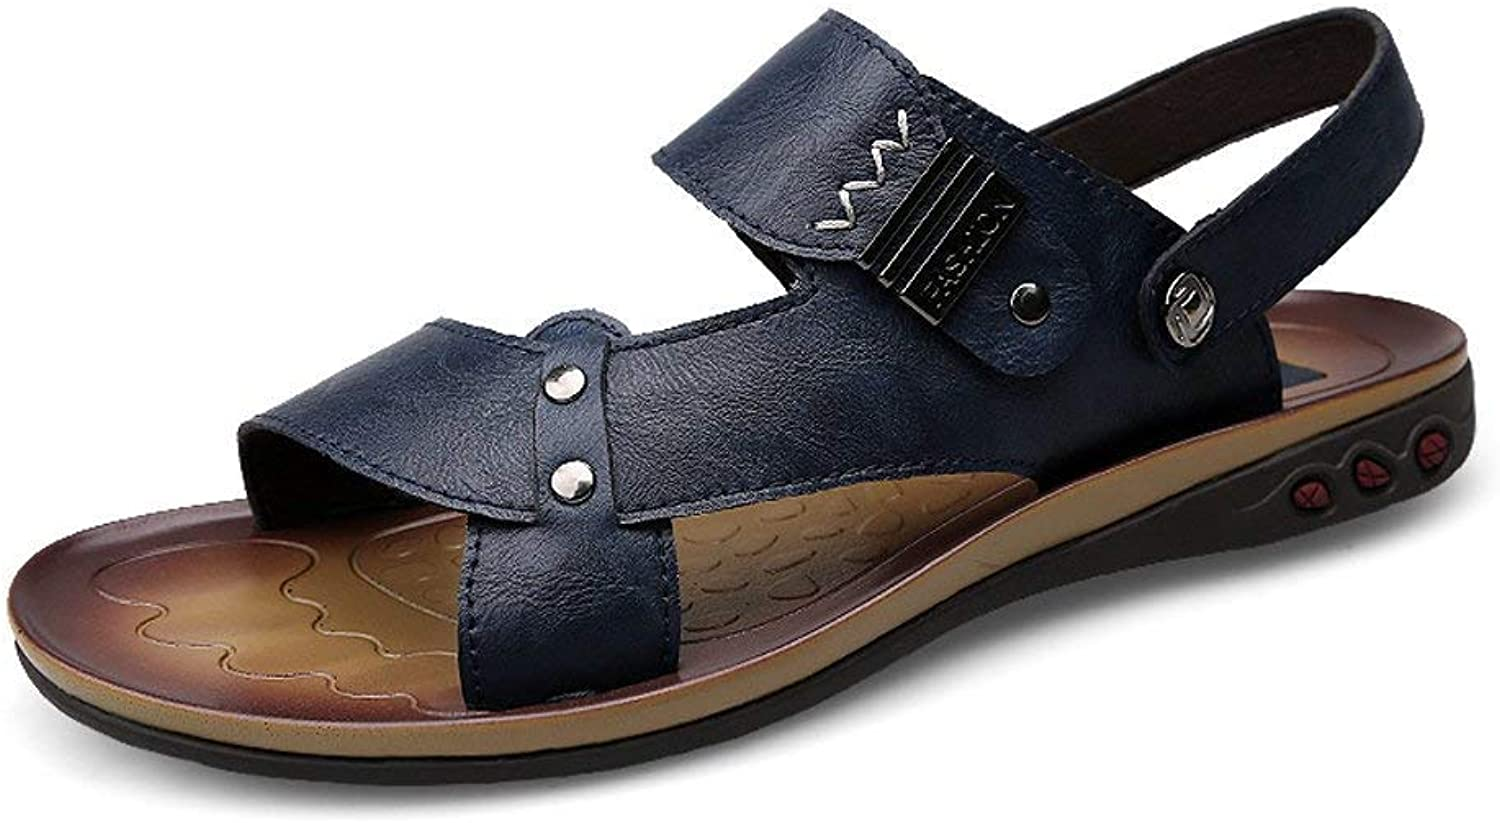 Fuxitoggo 2018 Sandals Men Faux Leather Beach Slippers Casual Non-slip Soft Sole Sandals shoes Adjustable Backless (color  Navy, Size  42 EU) (color   Navy, Size   45 EU)